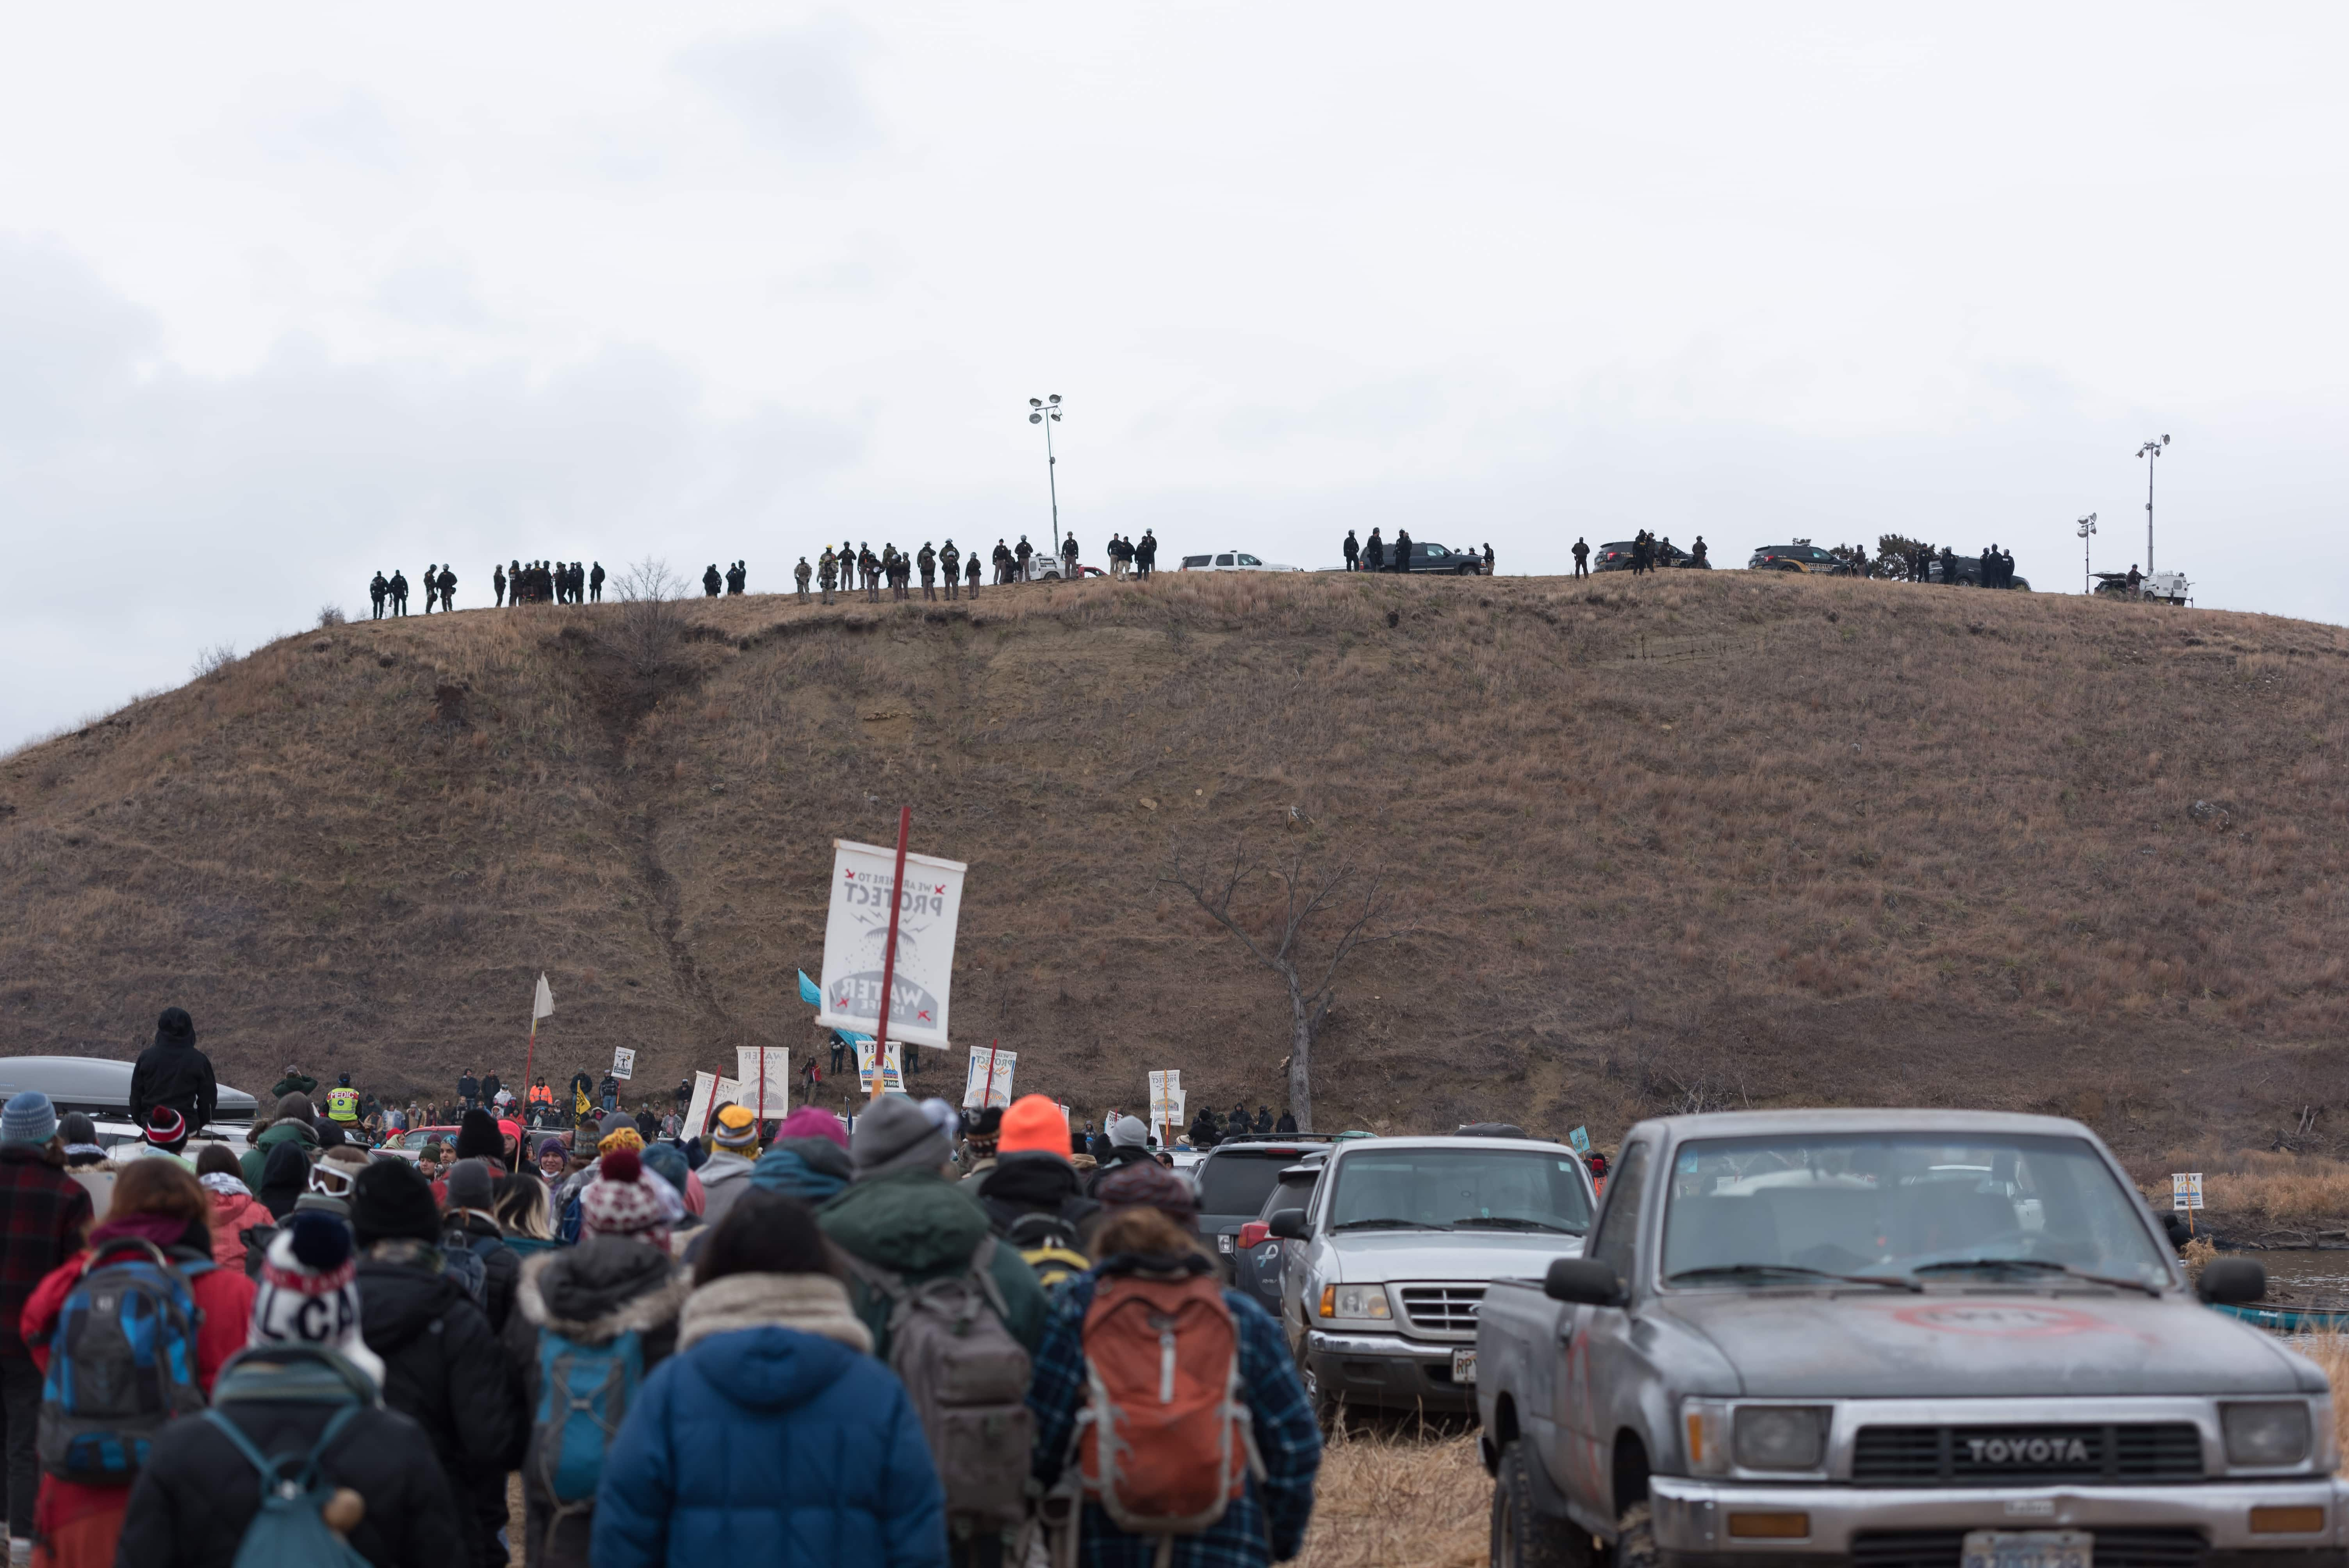 Water+protectors+walk+towards+Turtle+Island+while+Morton+County+Sheriff%E2%80%99s+Department+officers+watch+on+Thursday%2C+Nov.+24.+The+Dakota+Access+Pipeline%2C+a+%243.8+billion+project+proposed+by+Energy+Transfer+Partners+is+supposed+to+run+over+the+alleged+Native+American+burial+site.